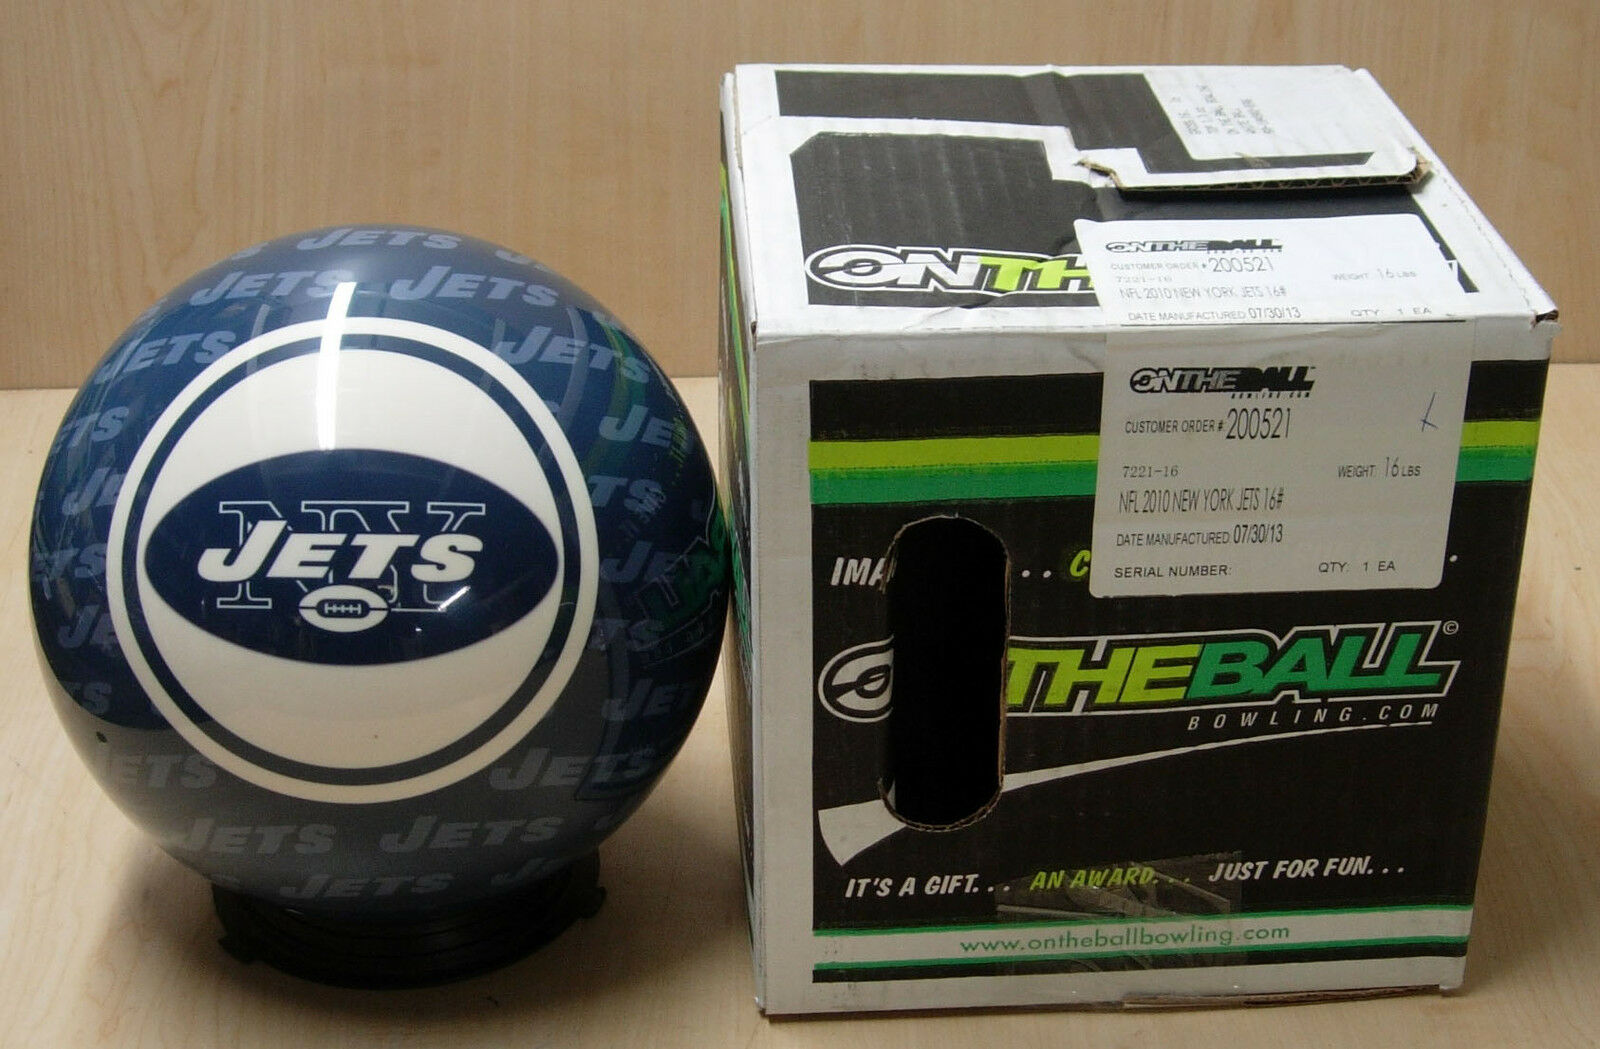 16NIB Bowling Ball OTB Viz-A-Ball RARE Retired 2010 NFL New York JETS